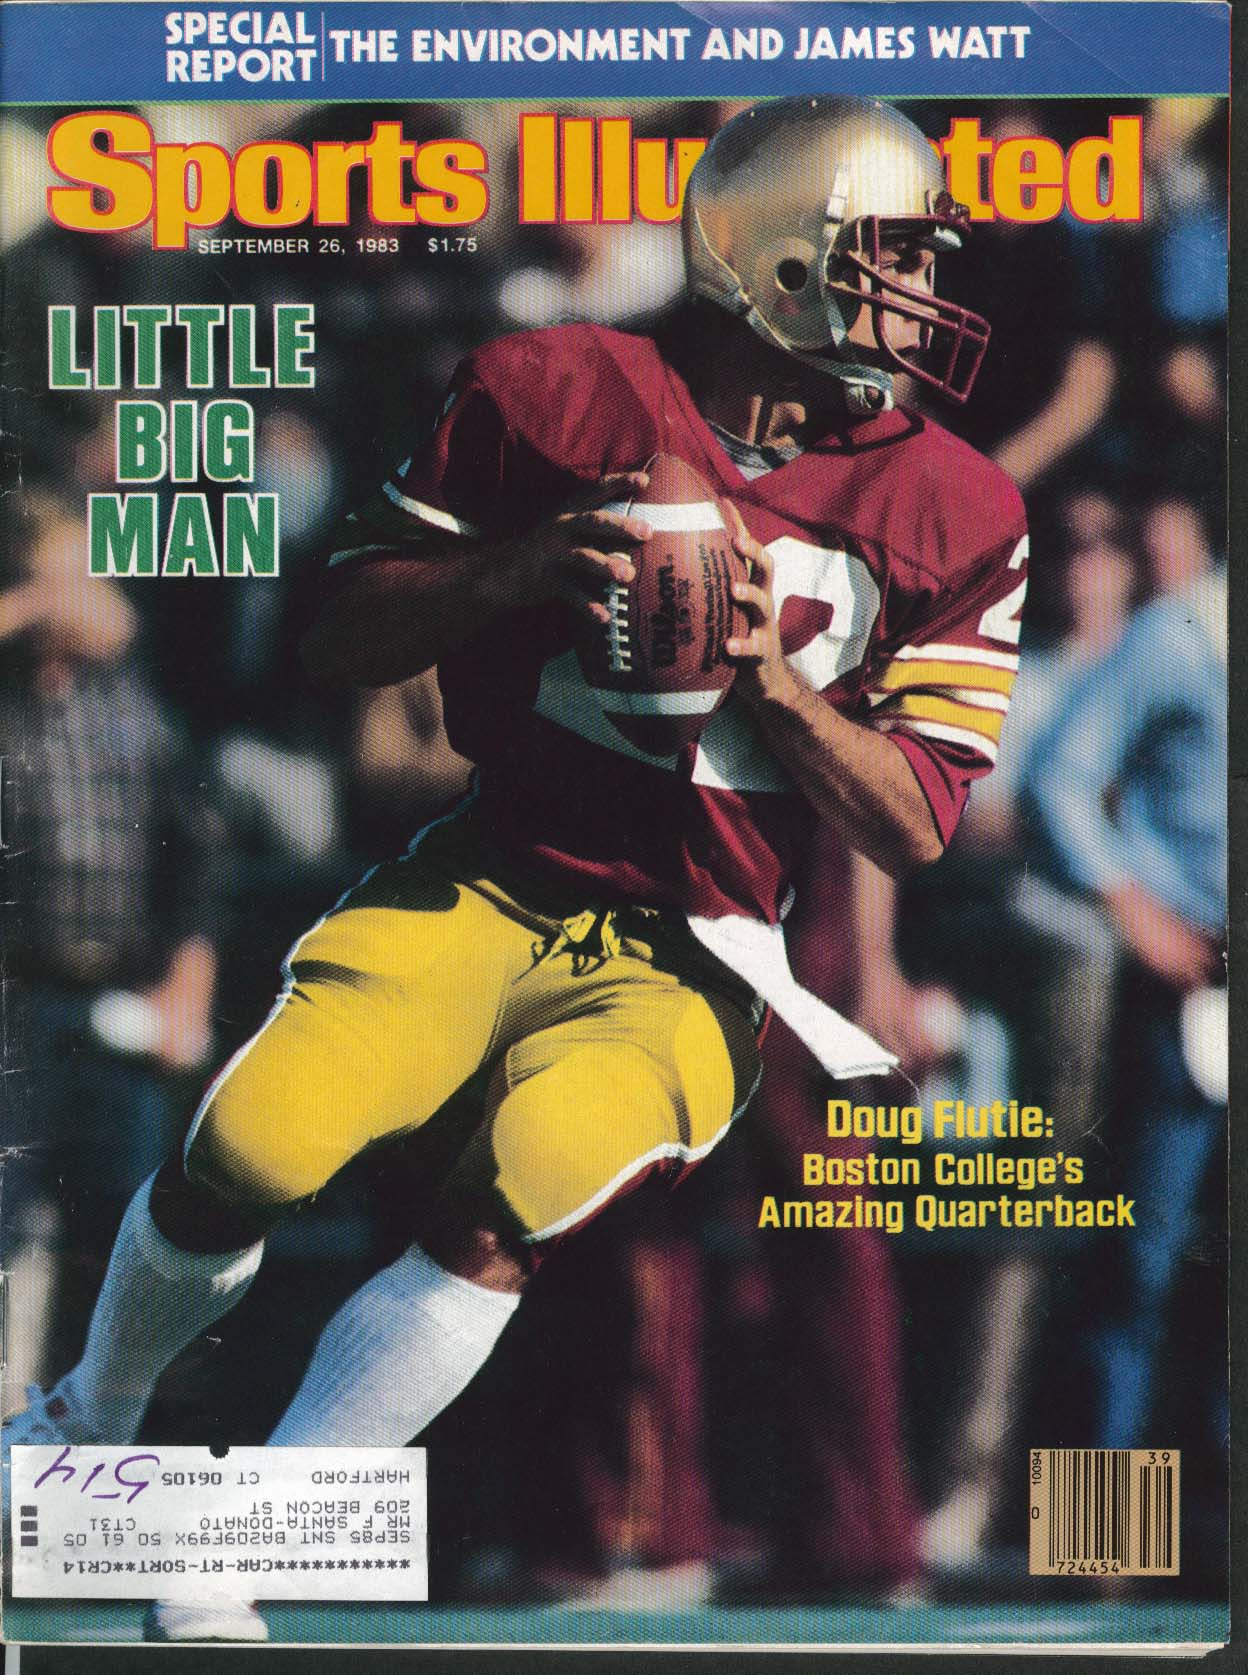 Image for SPORTS ILLUSTRATED Doug Flutie Steve Pelluer Lynn Dickey James Watt ++ 9/26 1983